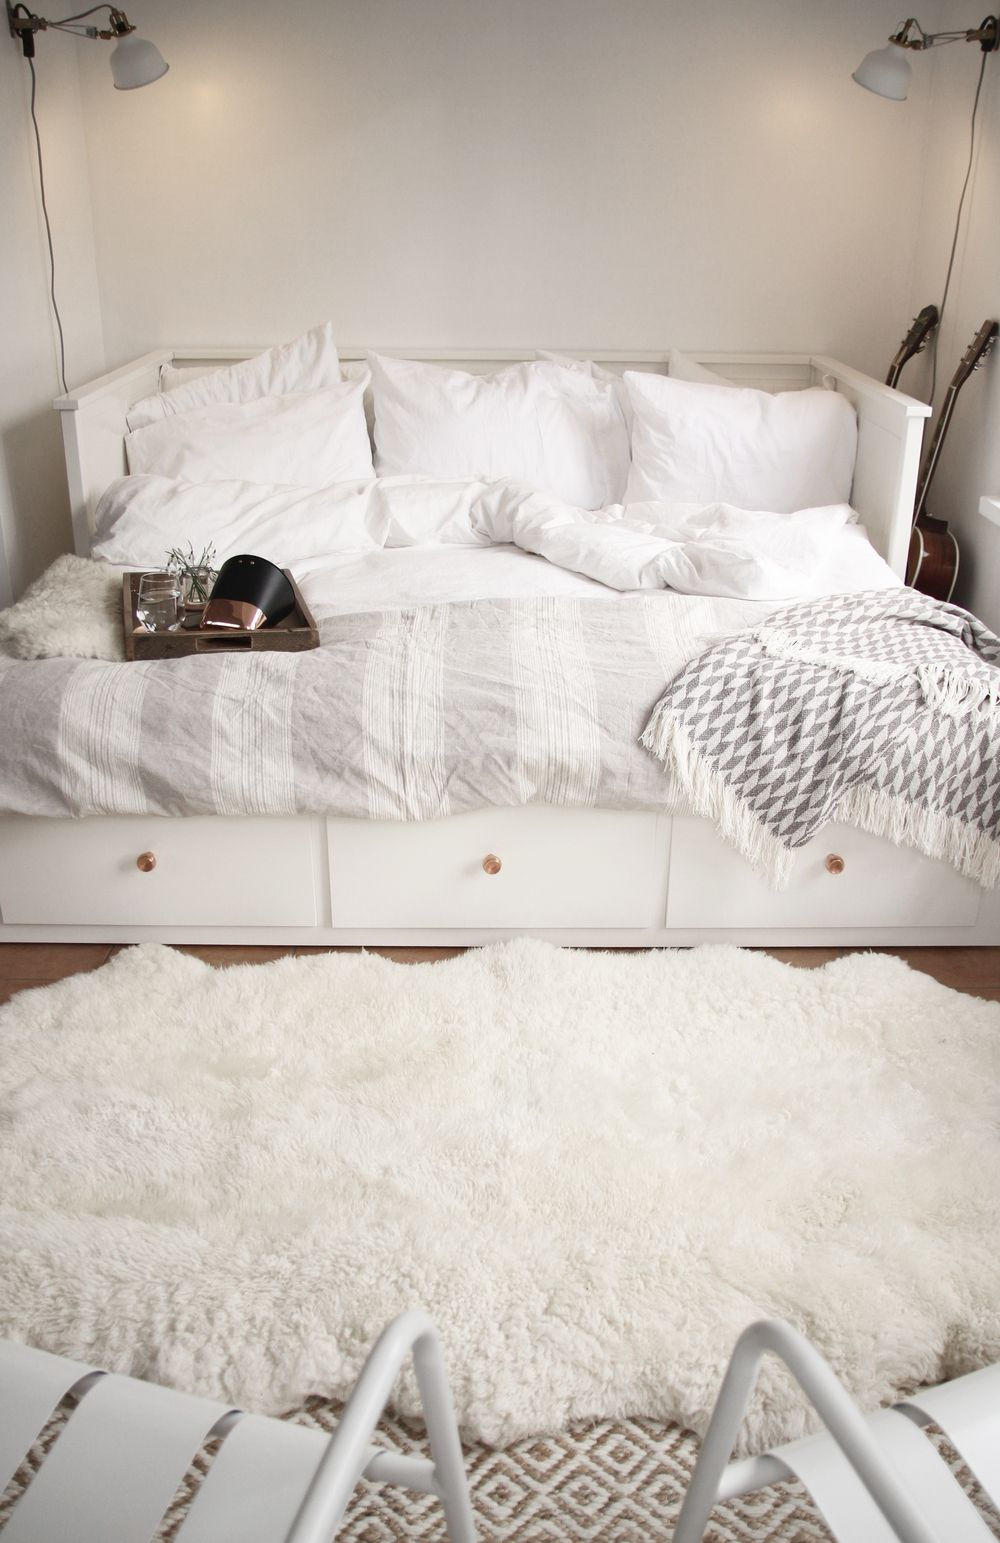 Pinterest Hemnes Schlafzimmer A Month Of Home My Favourite Corner Laura Bancroft